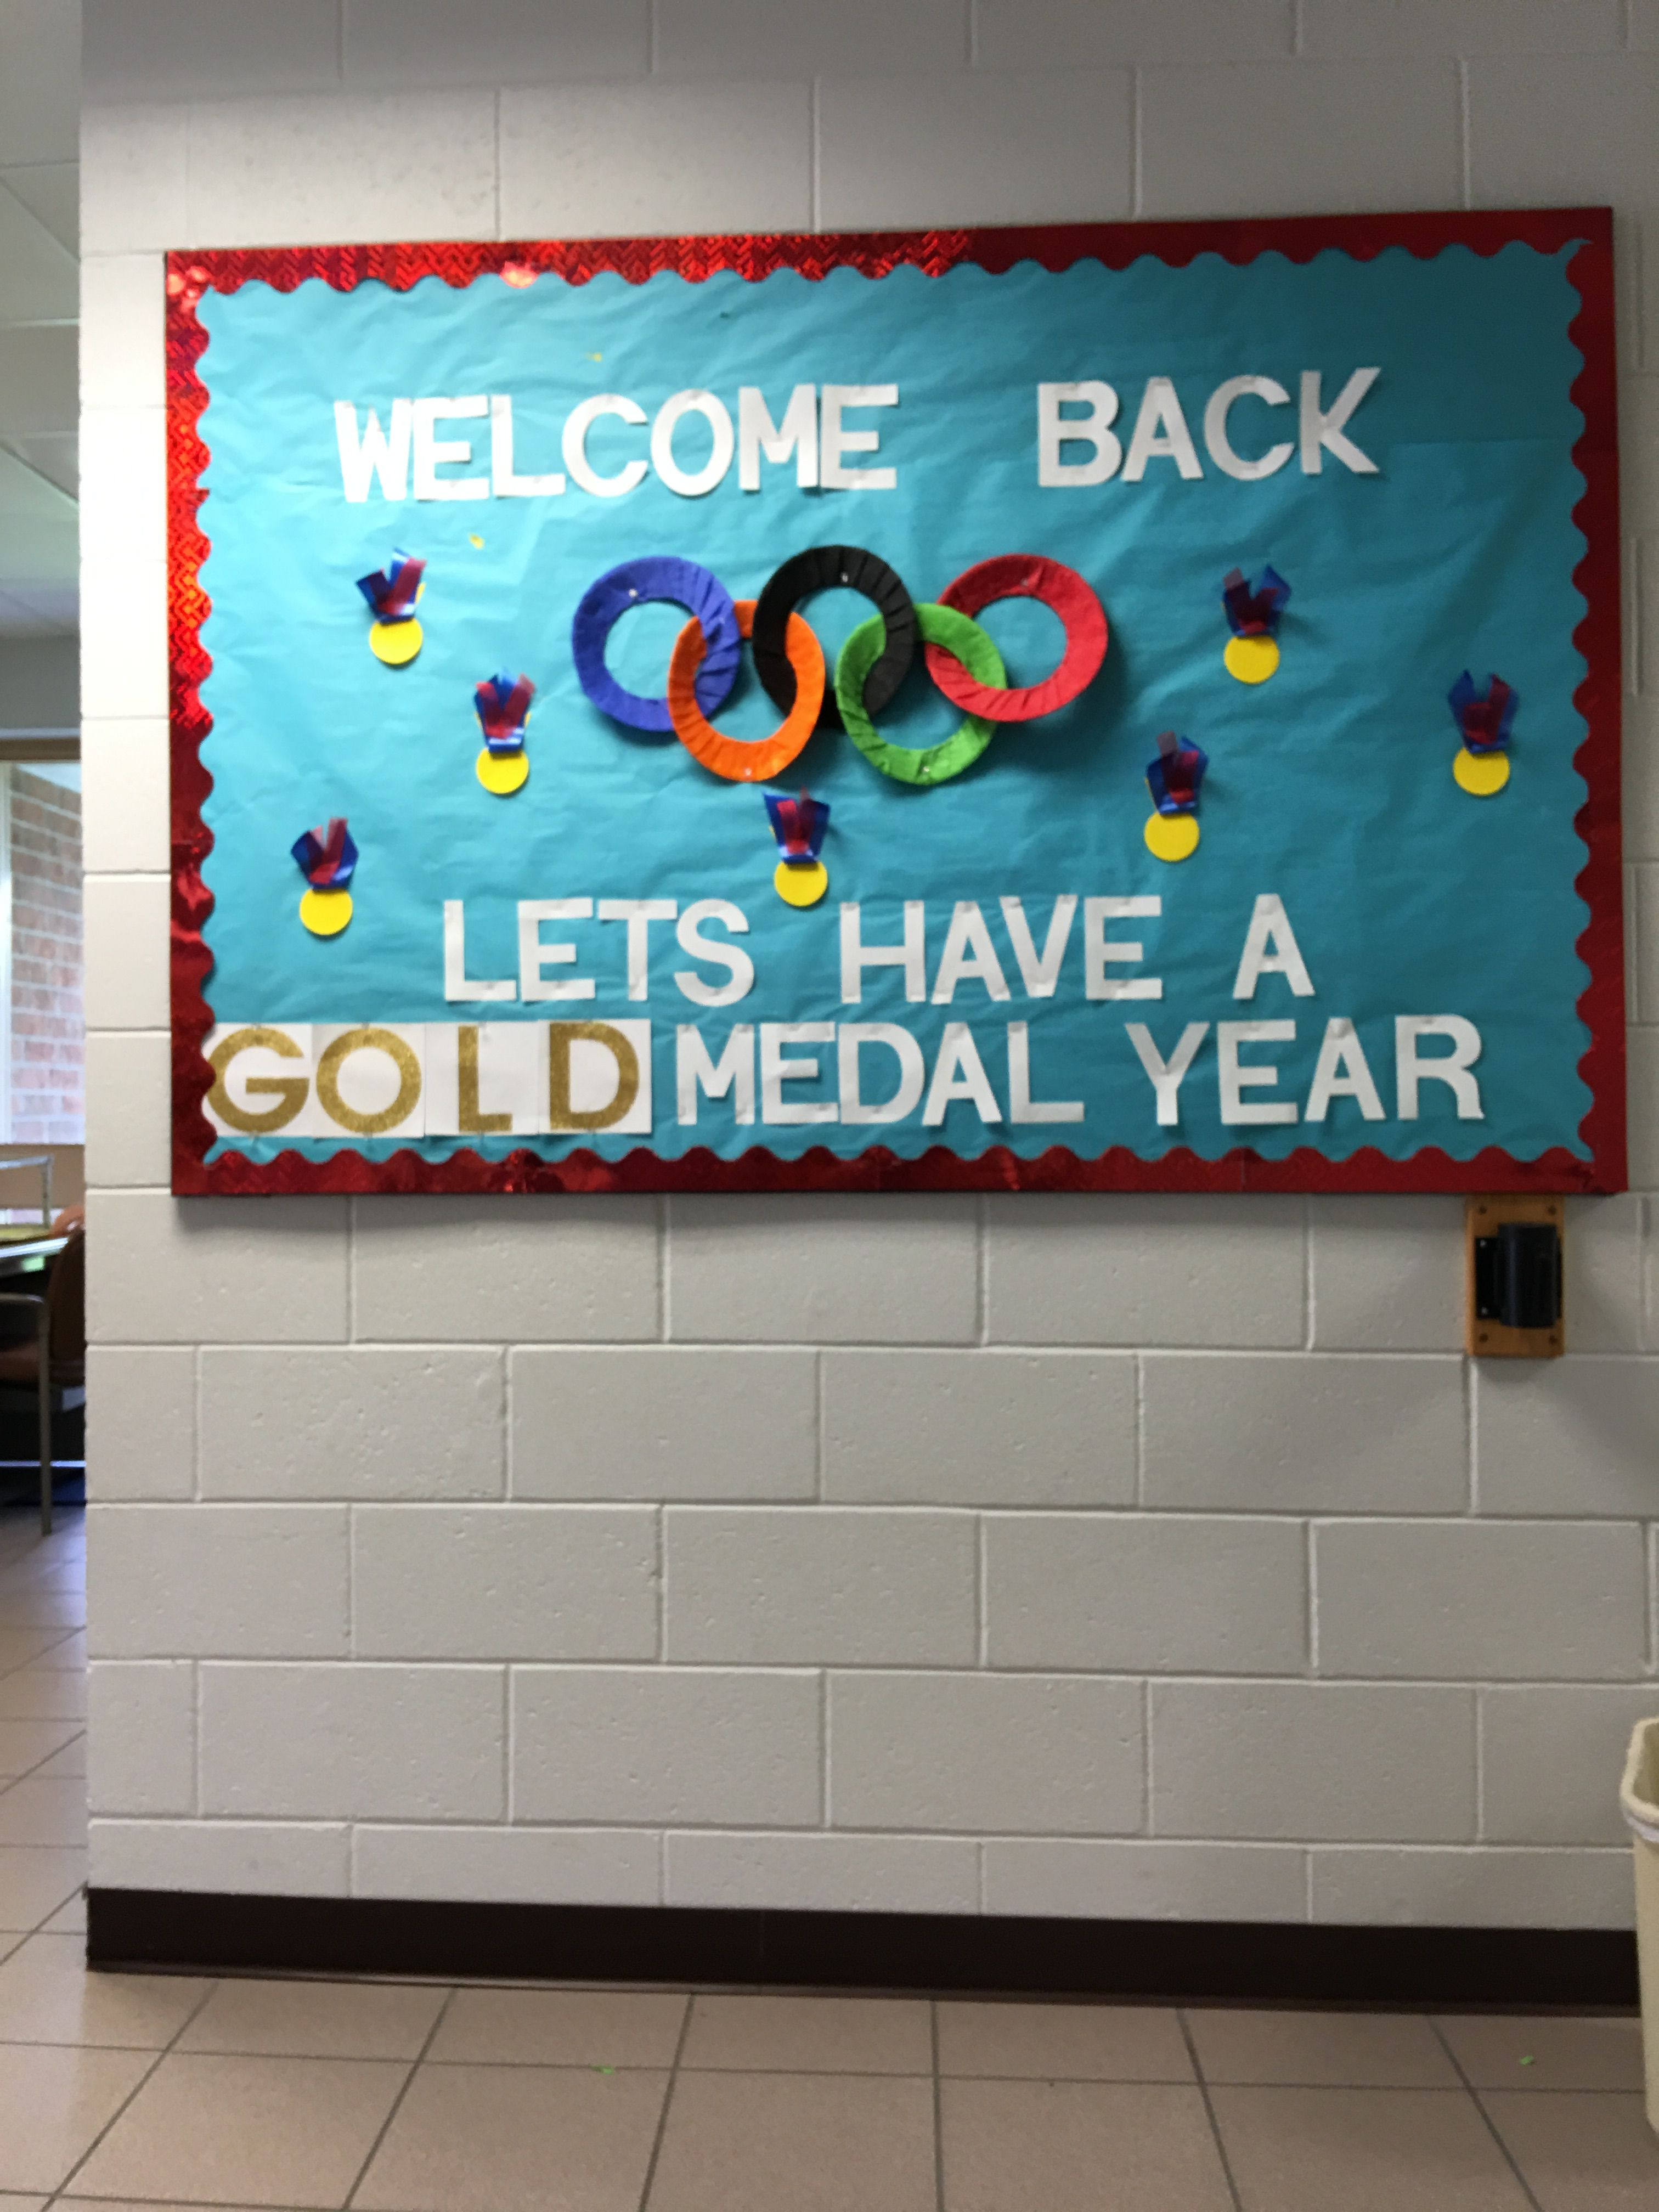 Back Let's Have a Gold Metal Year Olympics